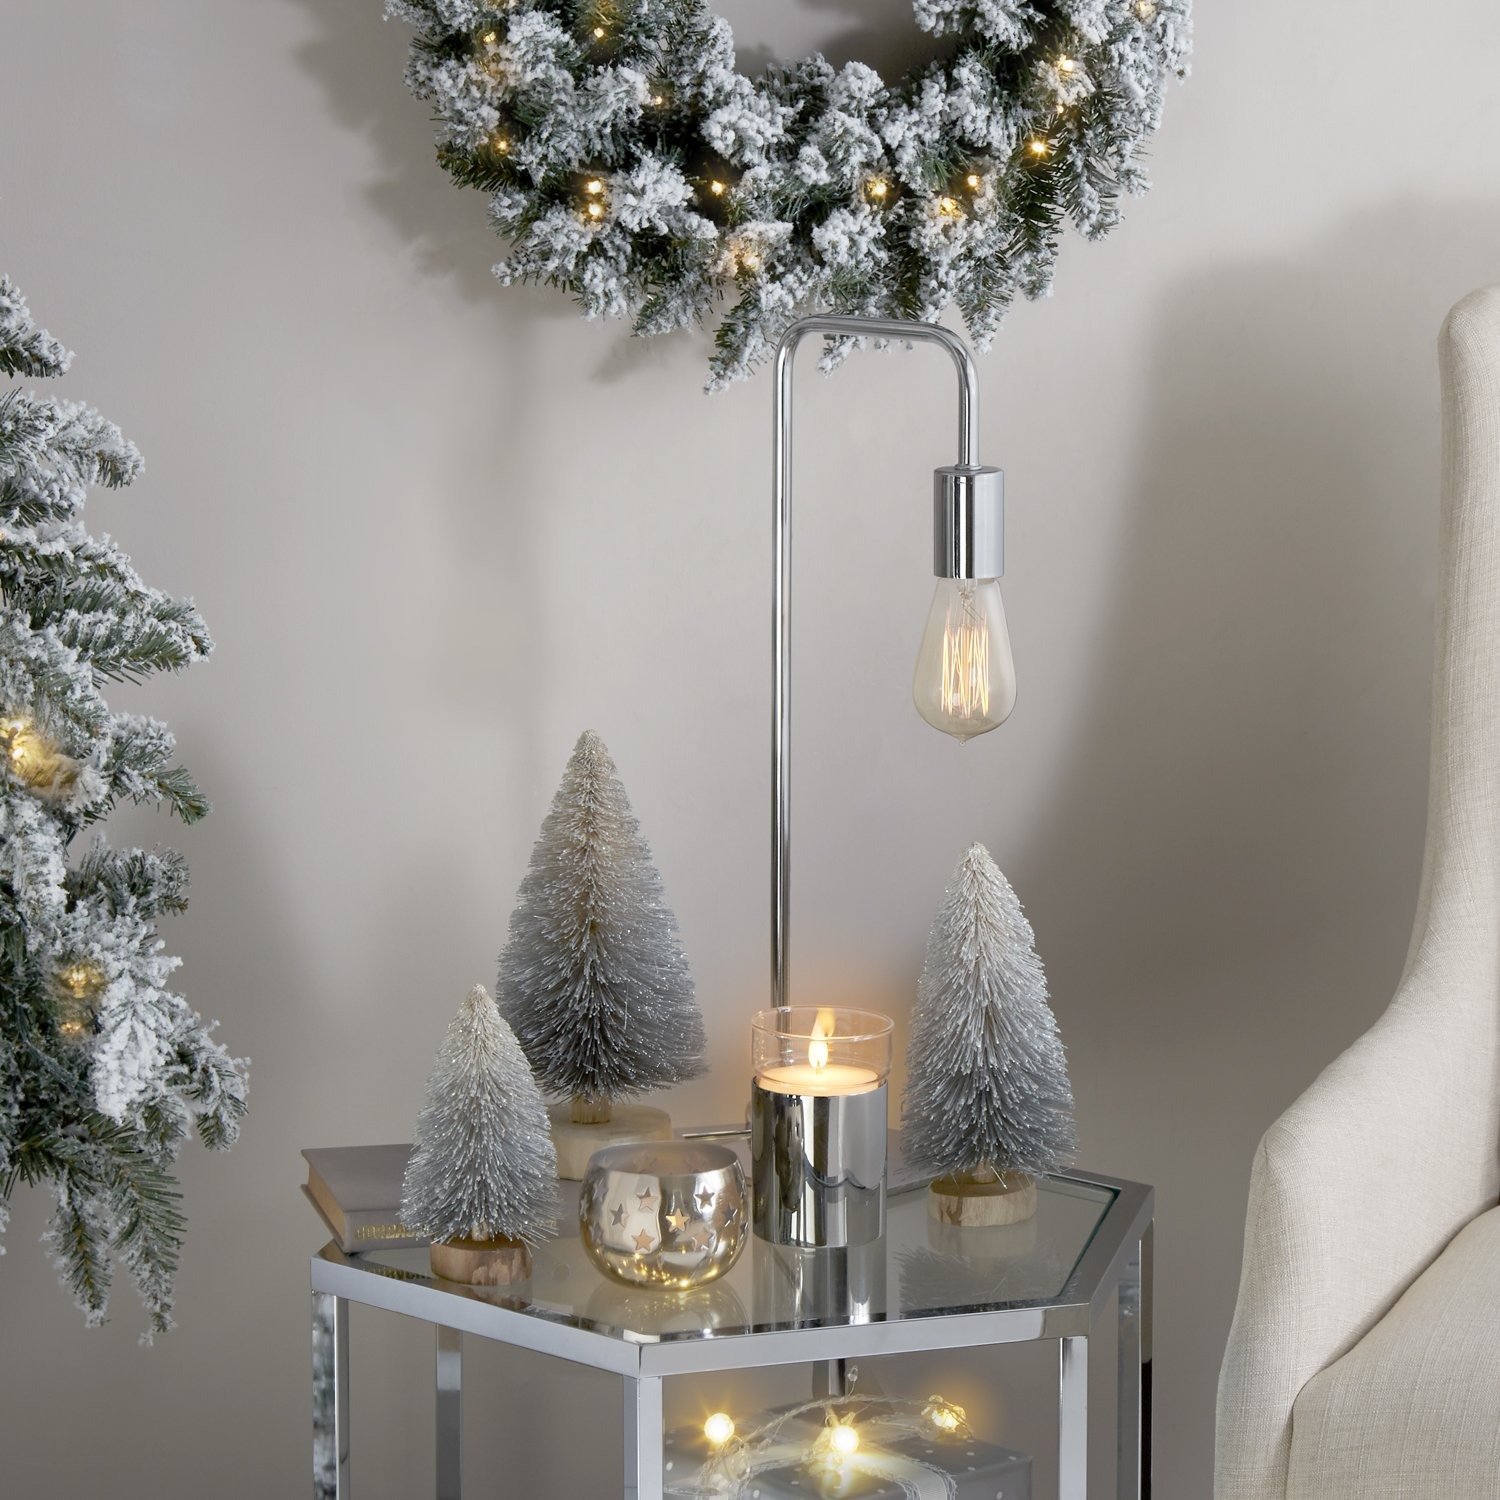 LampLust Bottle Brush Christmas Trees, Silver Sisal Table Top Decoration - Set of 3 by LampLust (Image #2)